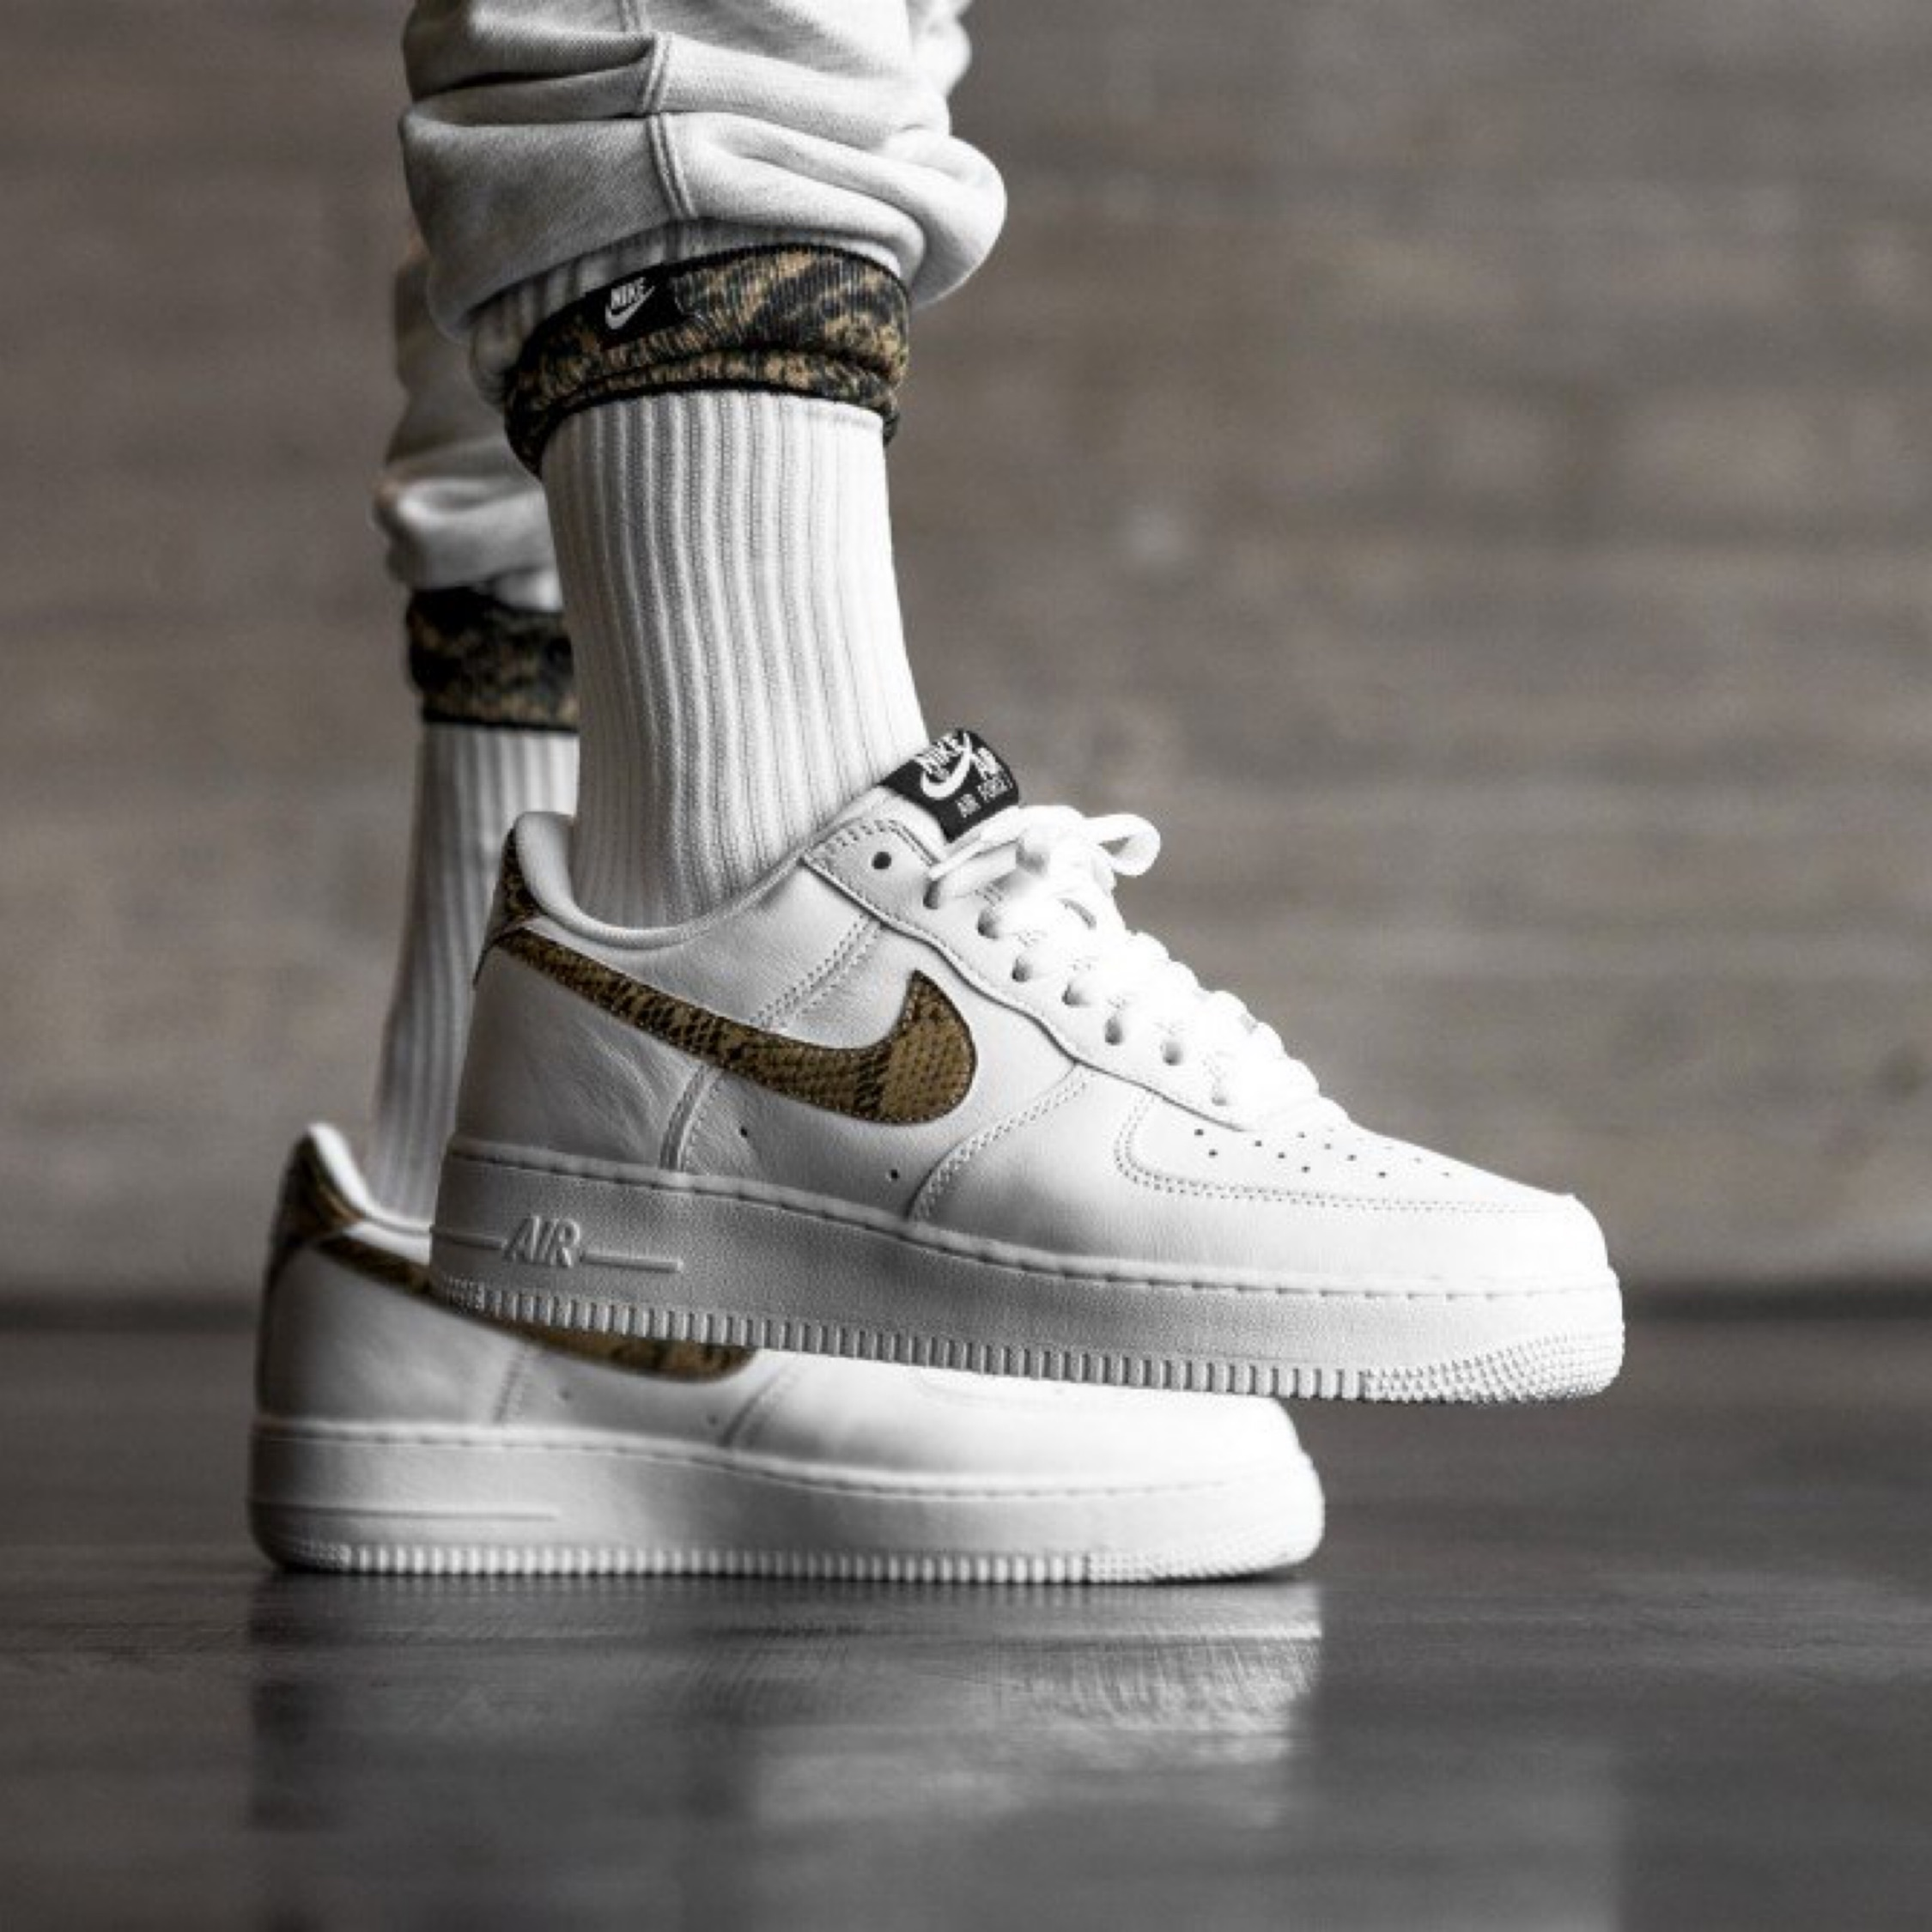 Nike Air Force 1 Low Retro Prm Qs *Ivory Snake*